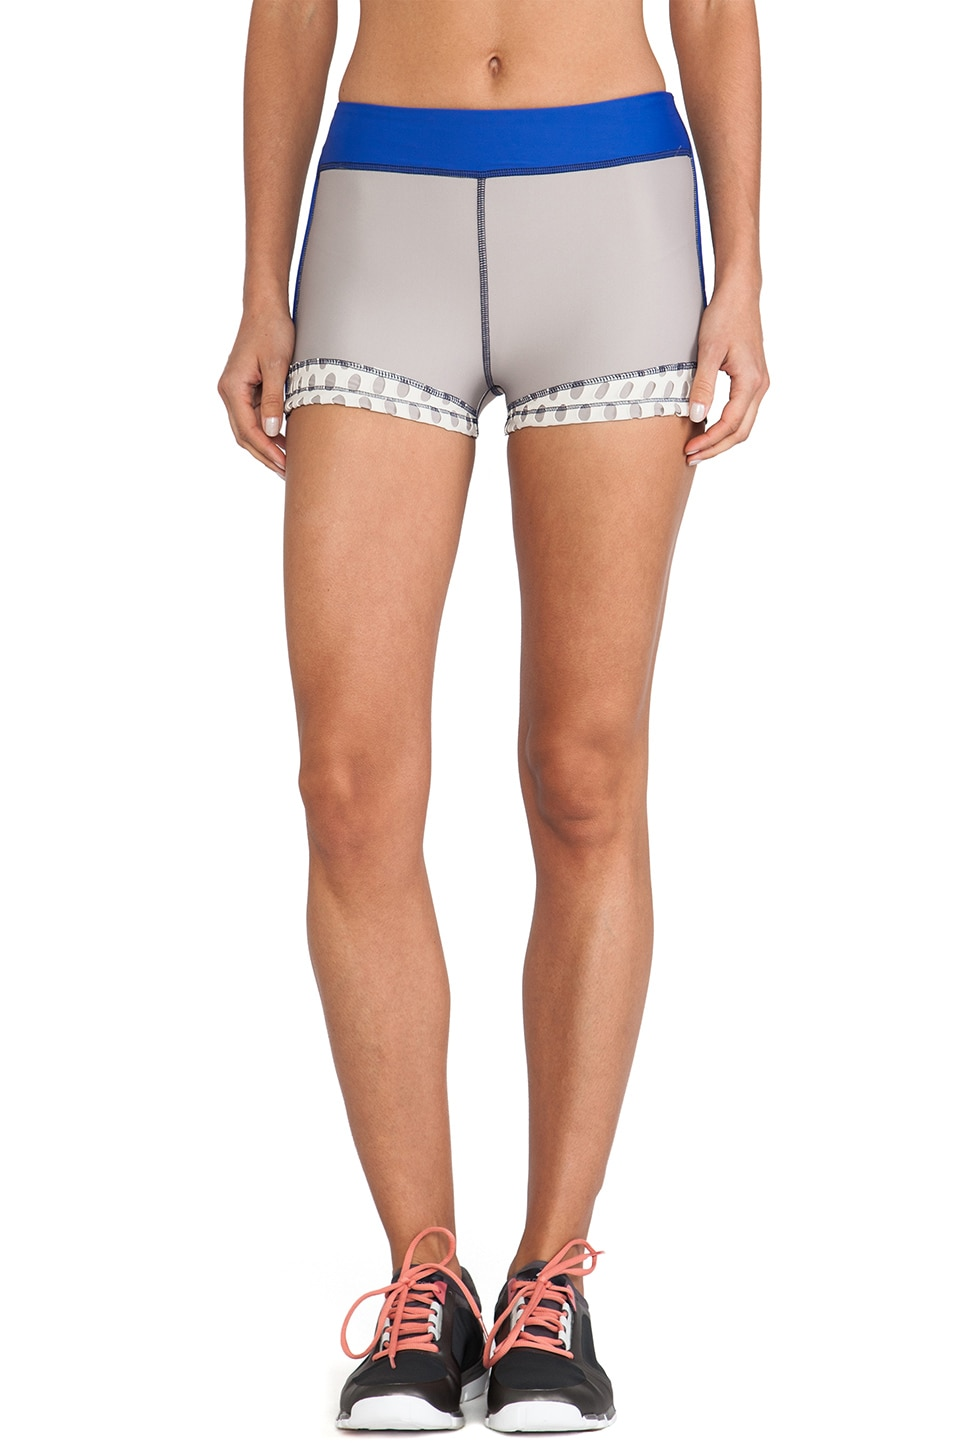 VPL Banded Boy Short in Oyster